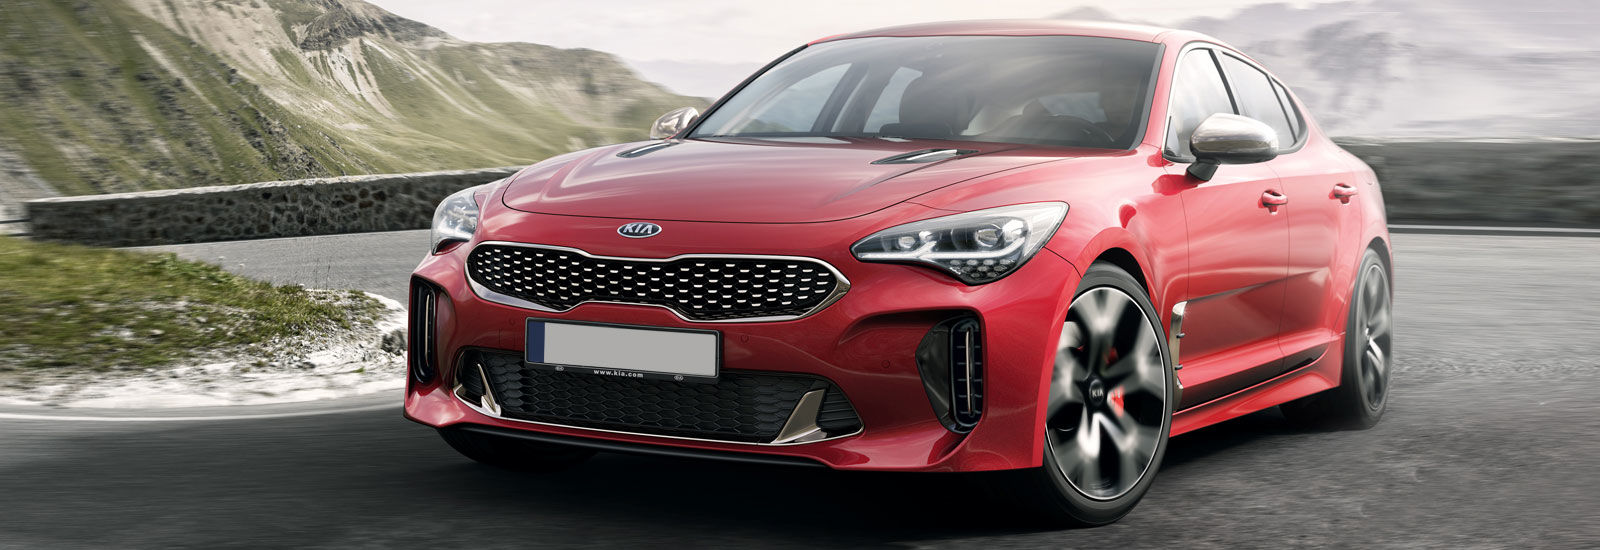 2018 kia lease deals. perfect deals red kia stinger gt front hairpin shot on 2018 kia lease deals